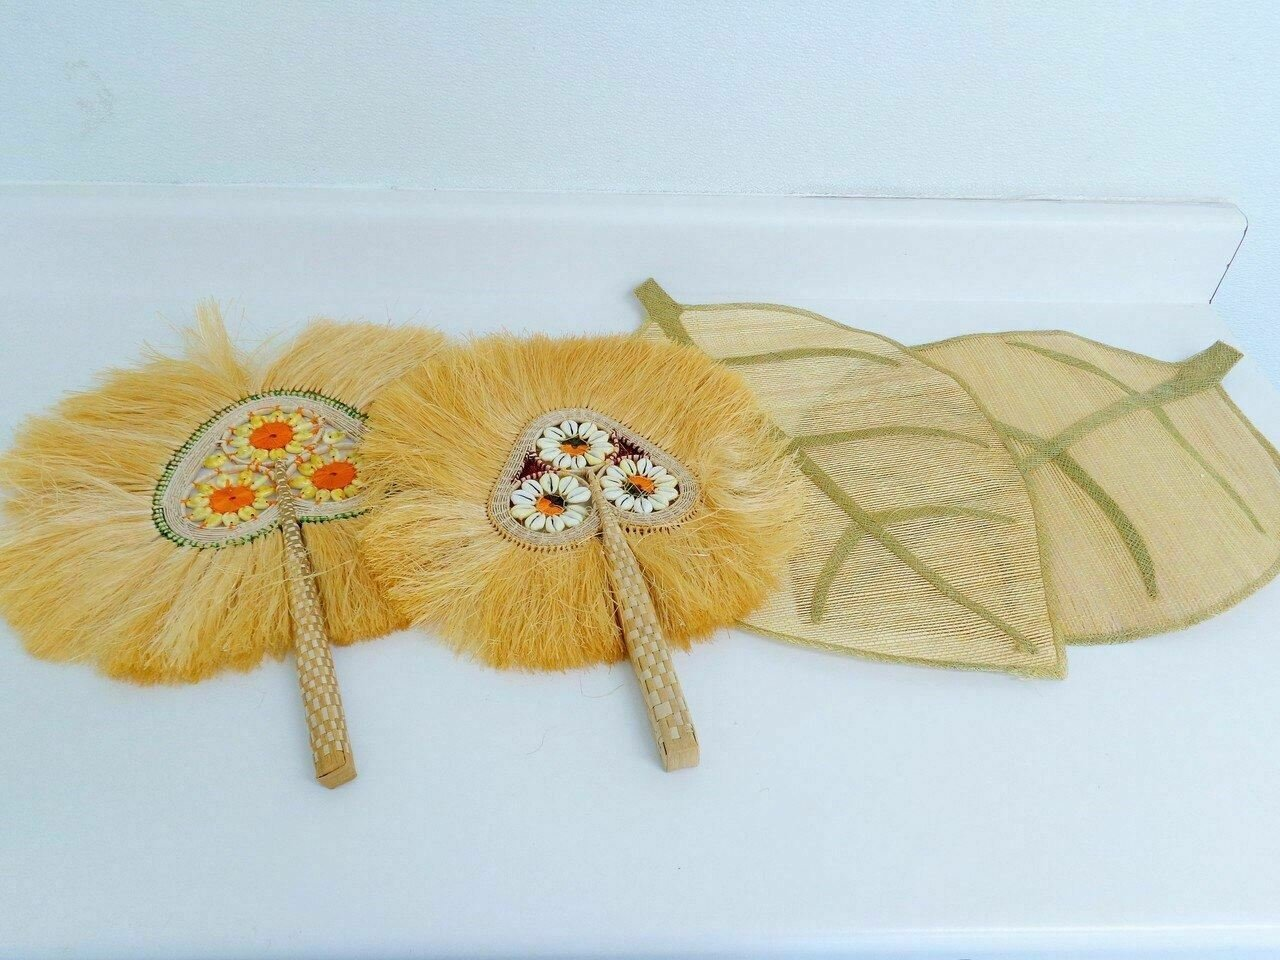 Antique Polynesian Cuscus Pampas Grass Fan Set